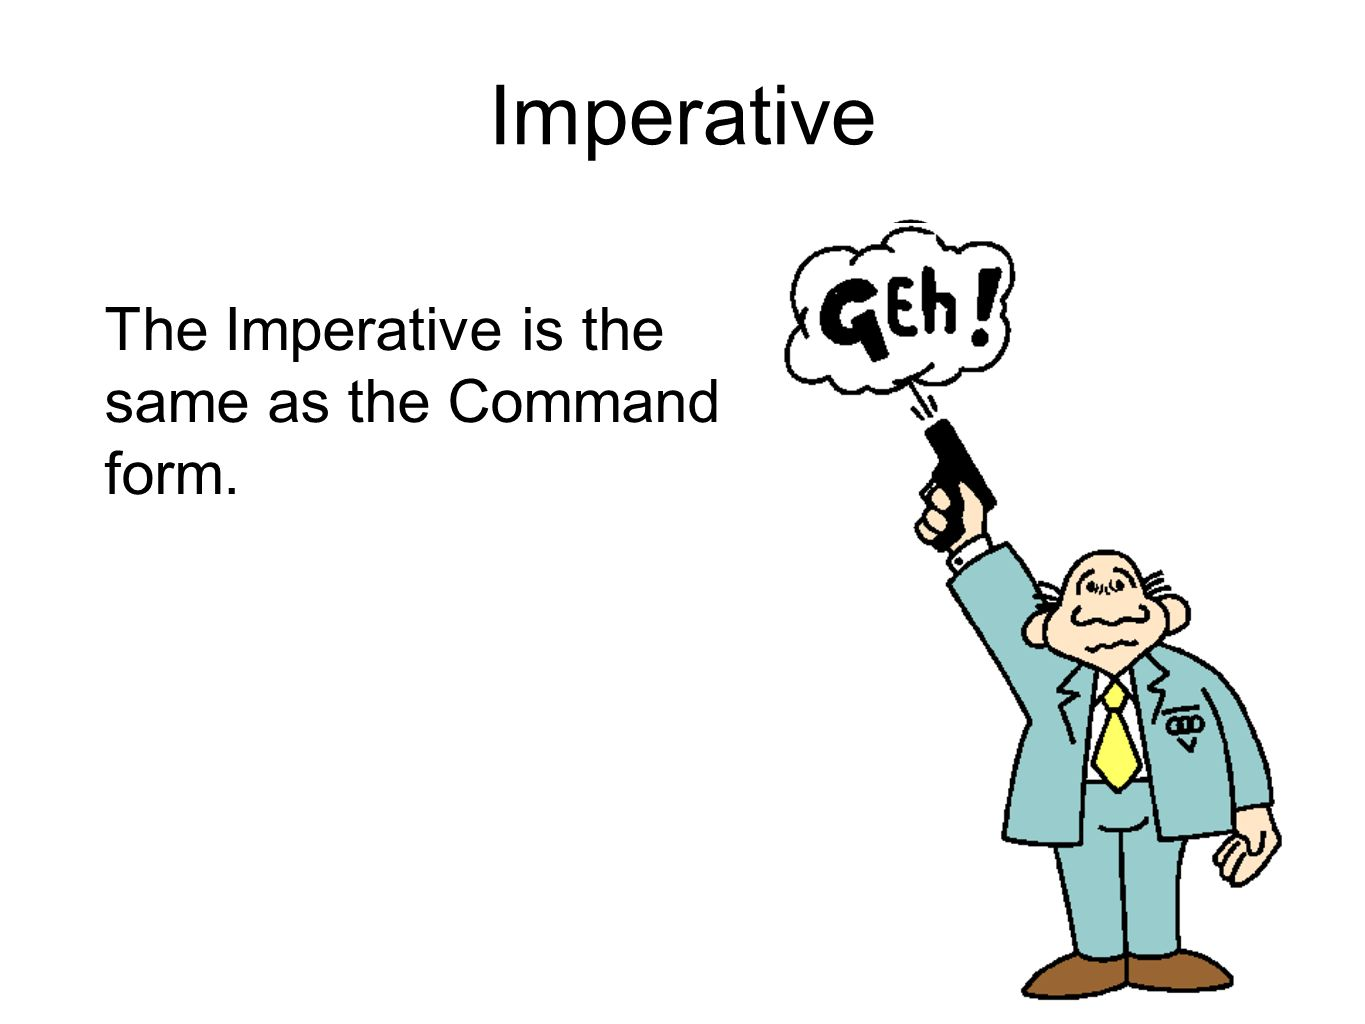 Imperative The Imperative is the same as the Command form.